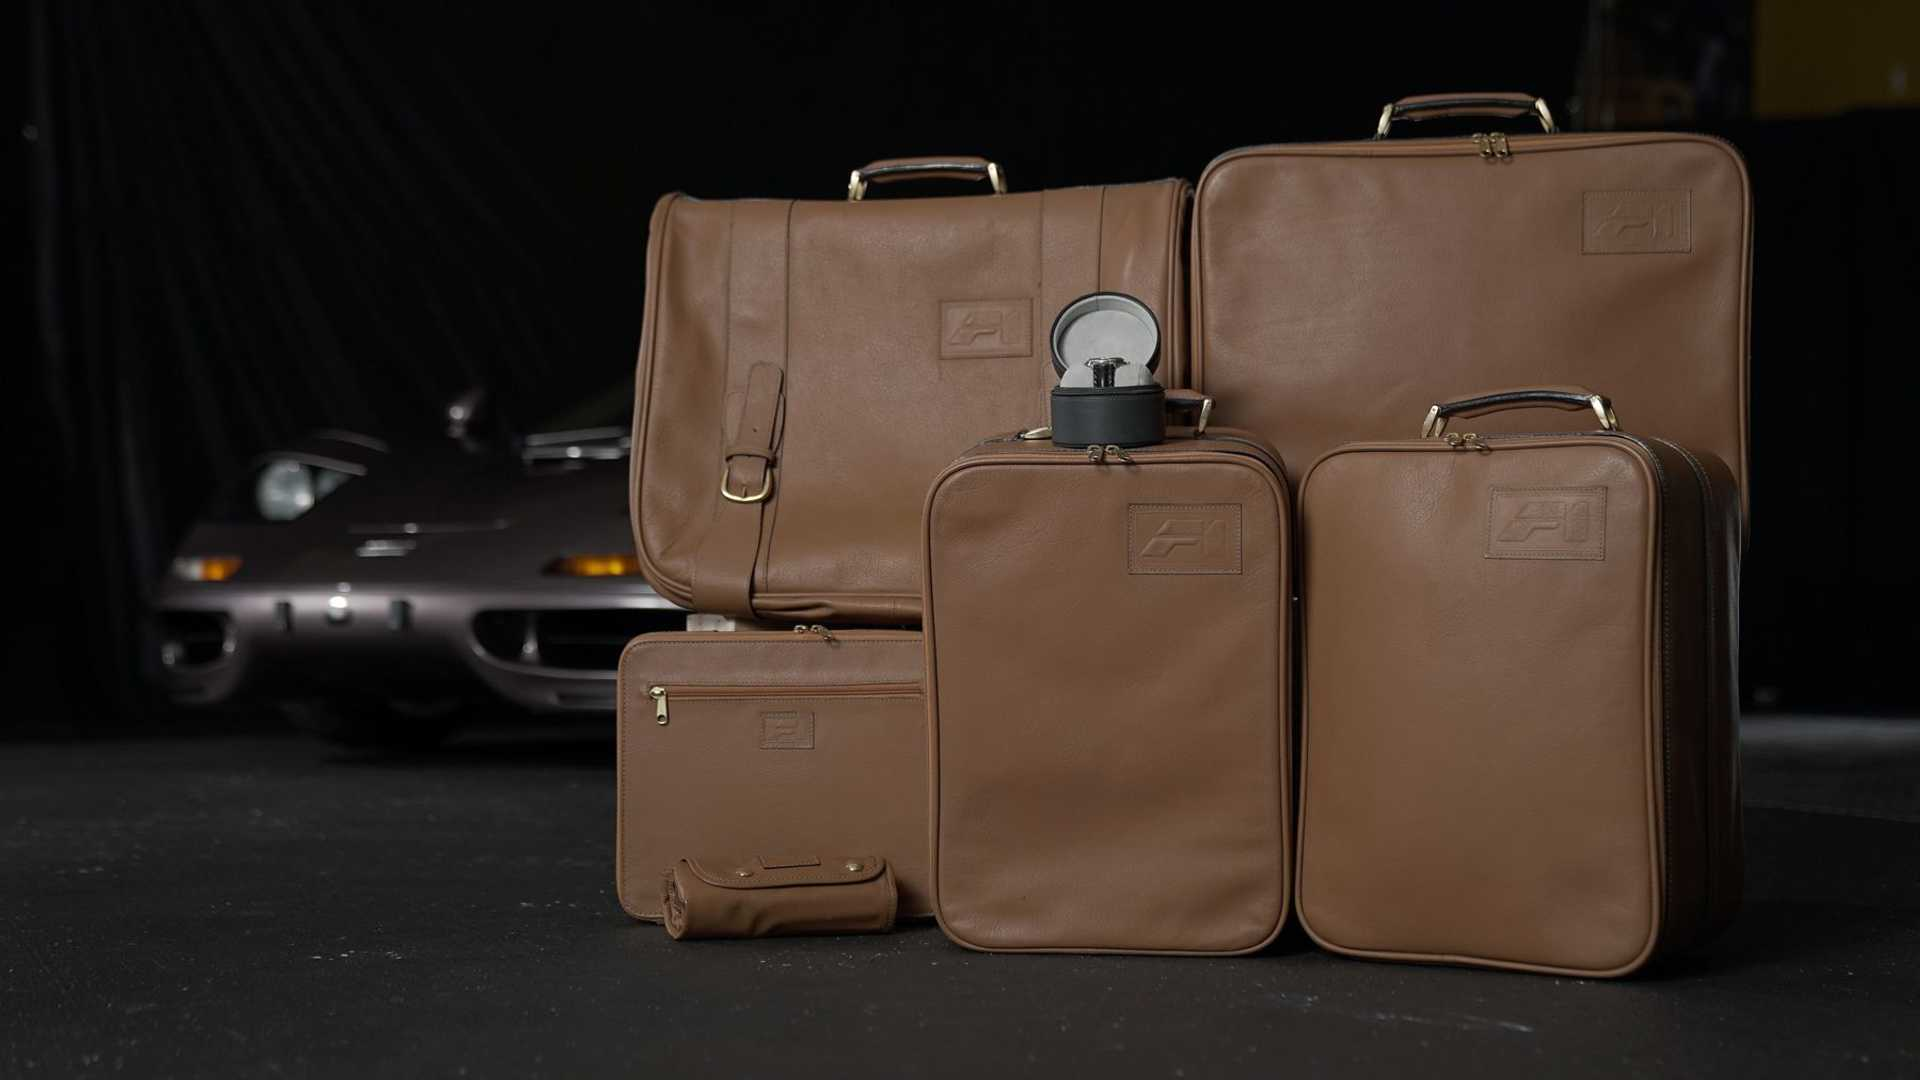 1995 McLaren F1 Gooding And Company Auction 2020 Luggage Low